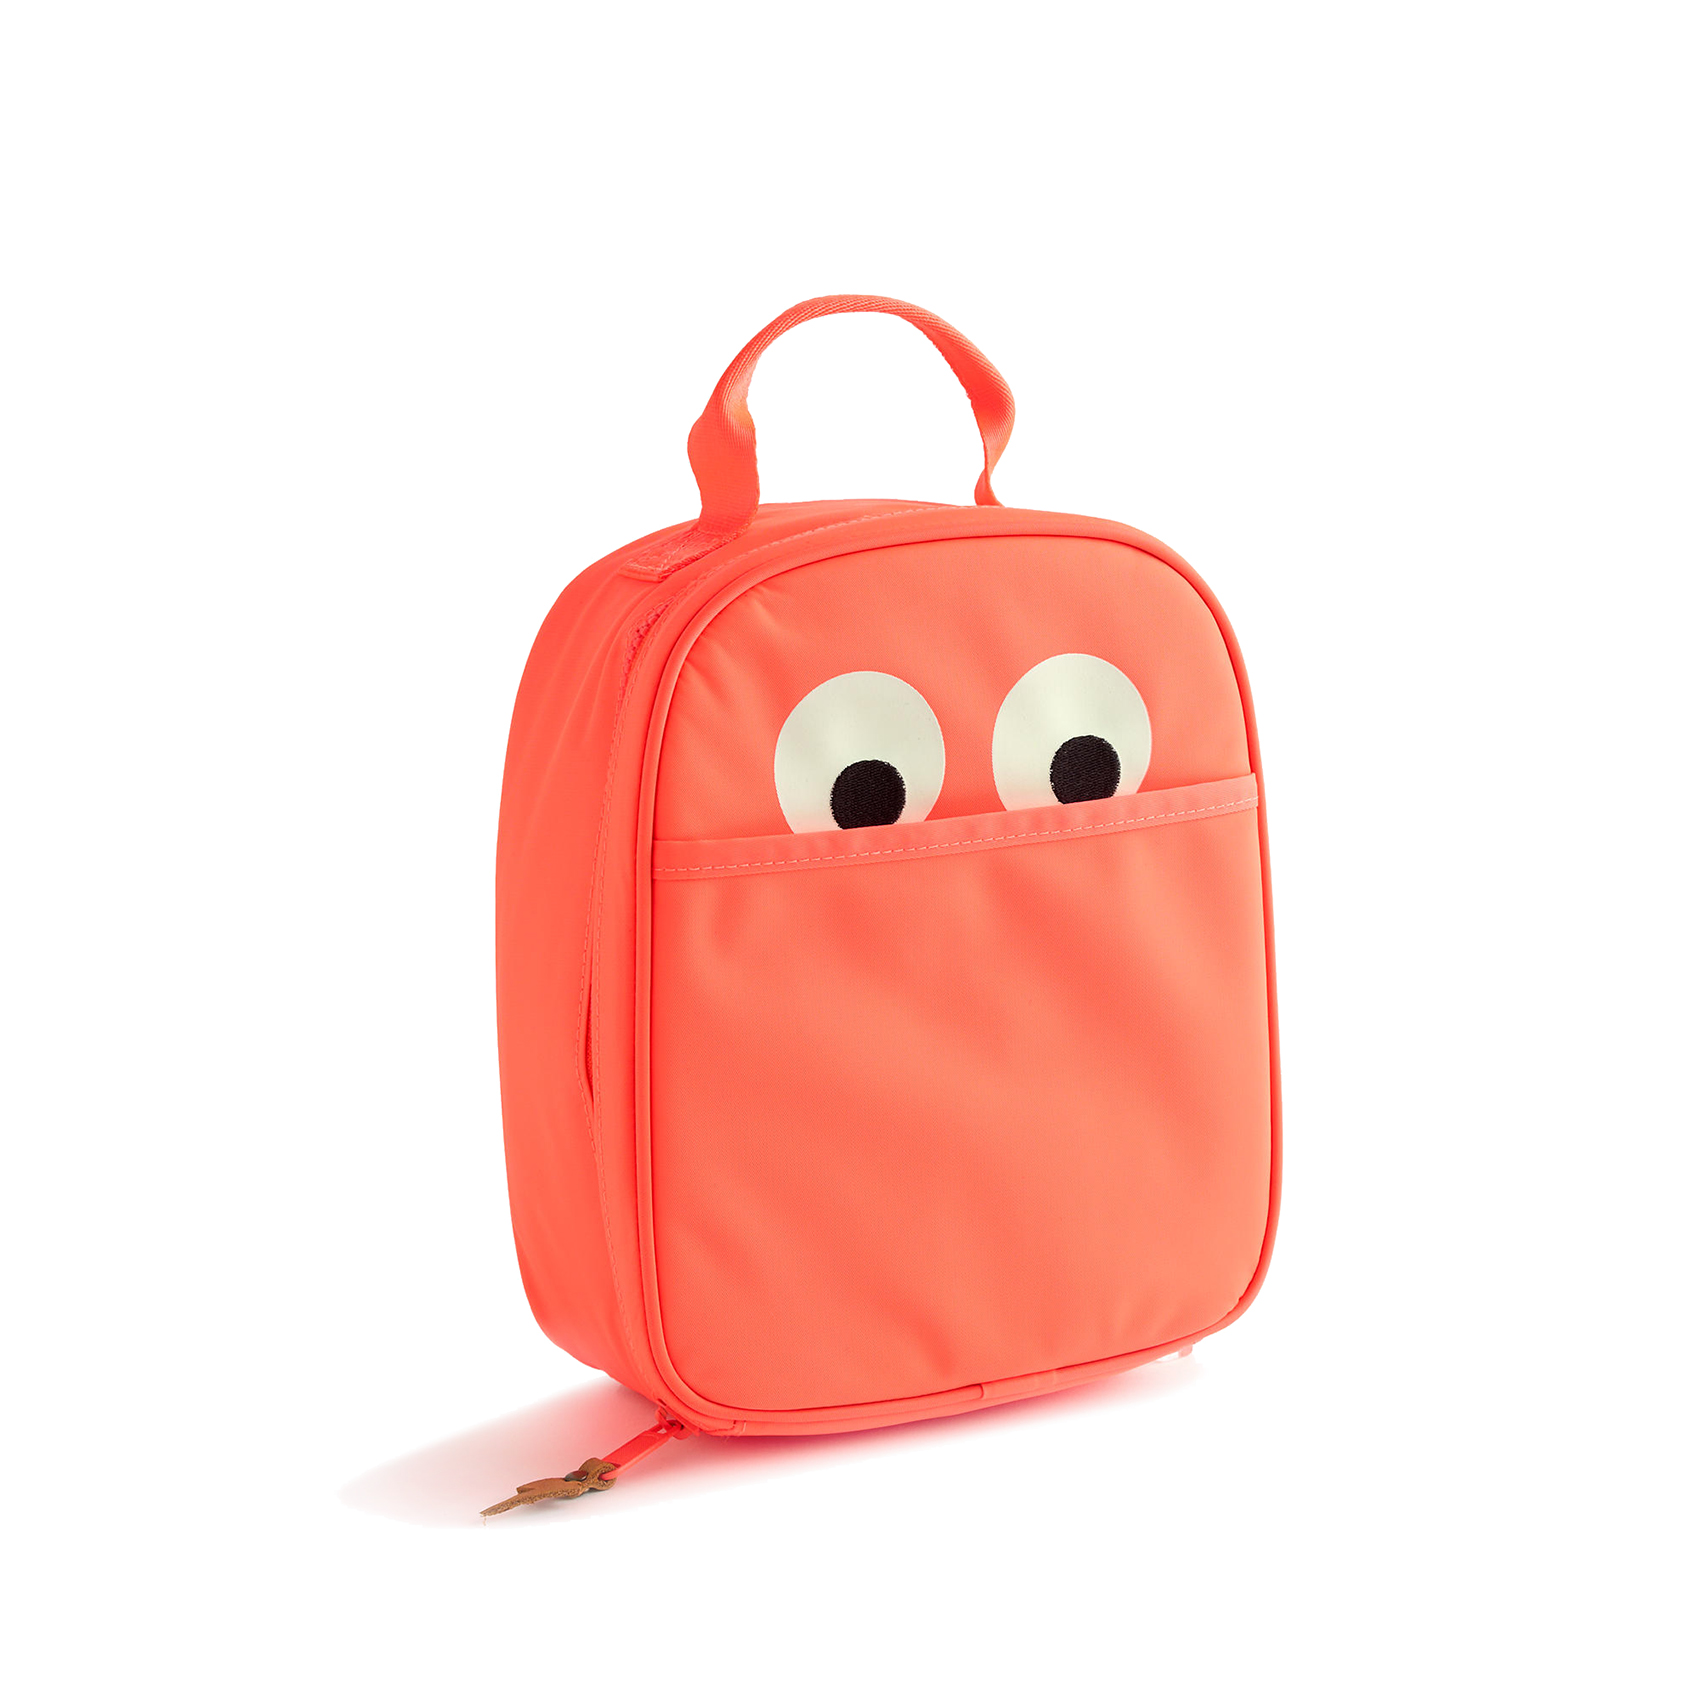 Crewcuts Max the Monster Lunch Box